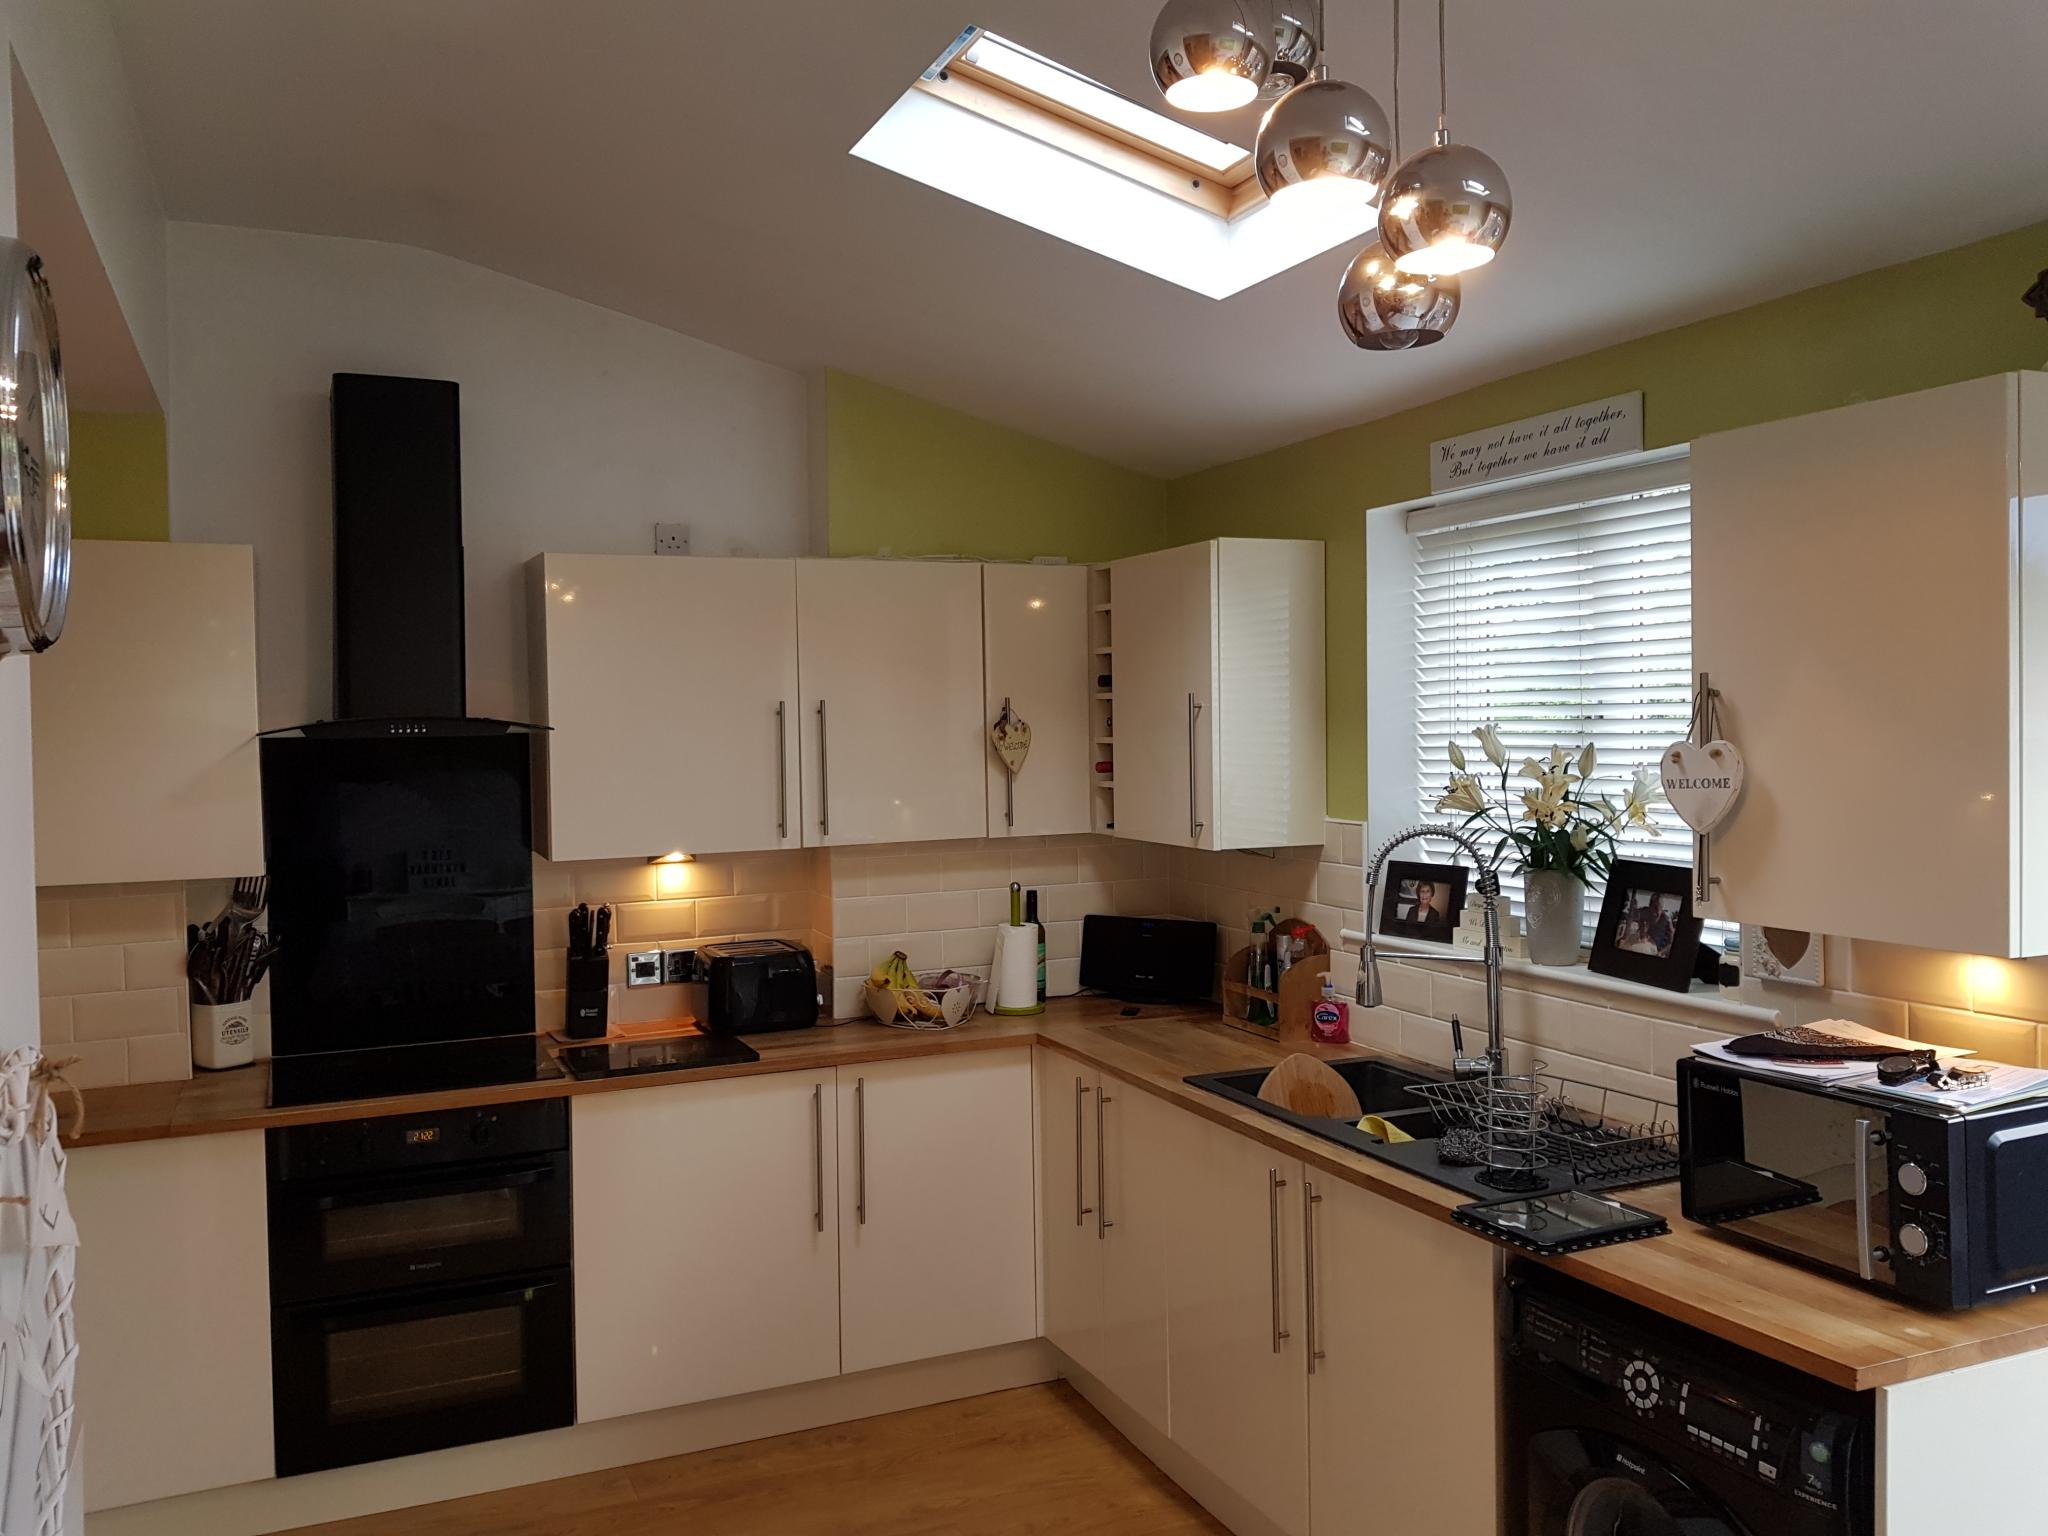 3 bedroom mid terraced house SSTC in Ipswich - 7